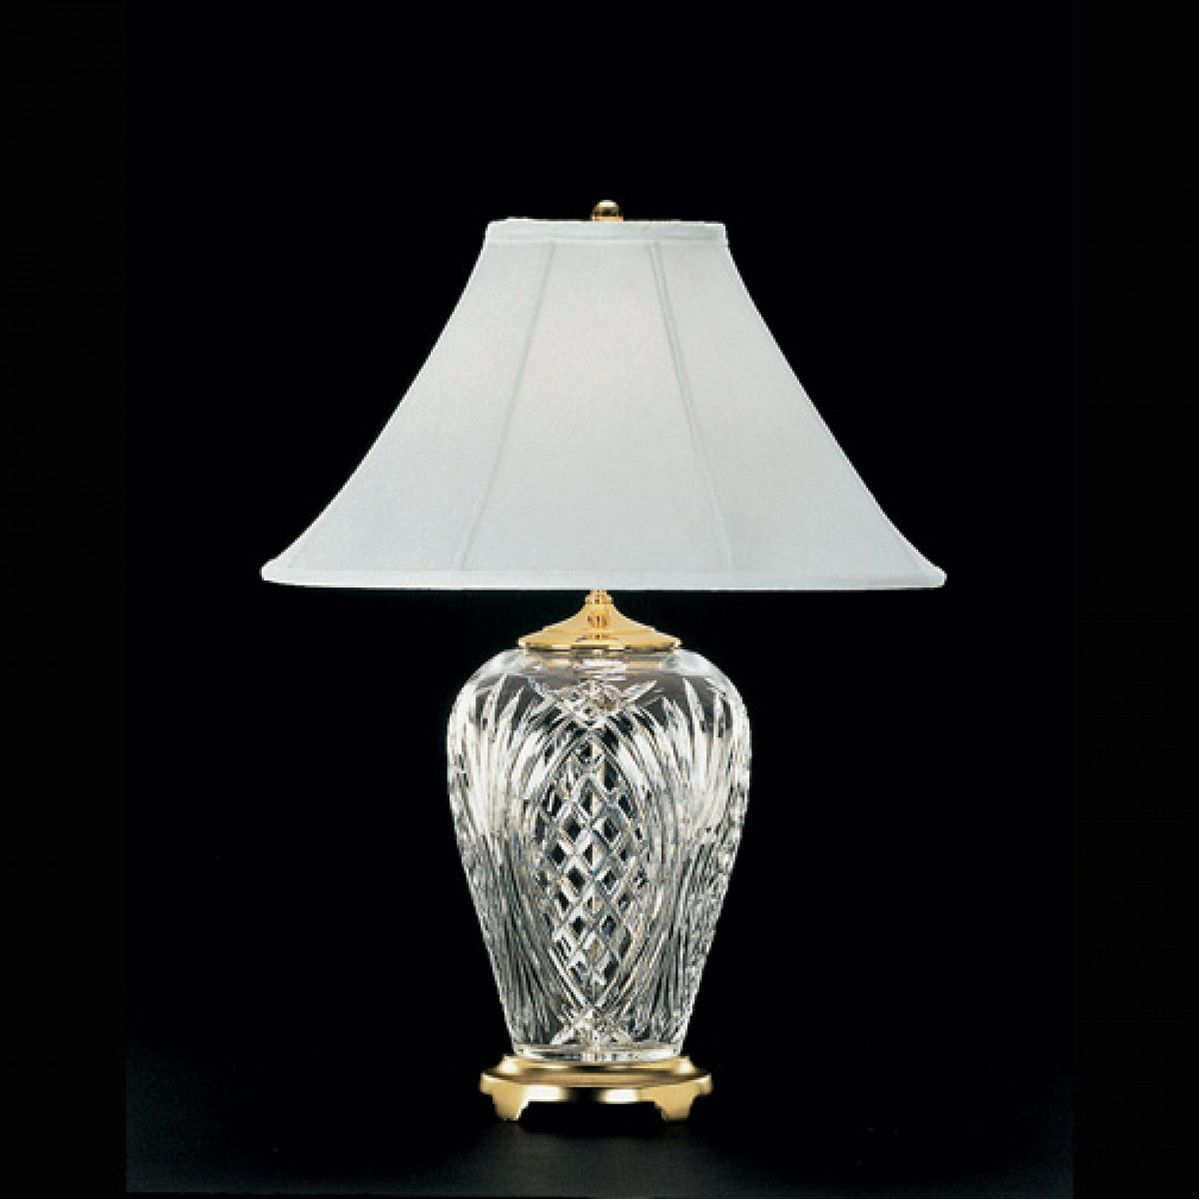 Waterford Lighting Kilkenny Table Lamp 29 Polished Br